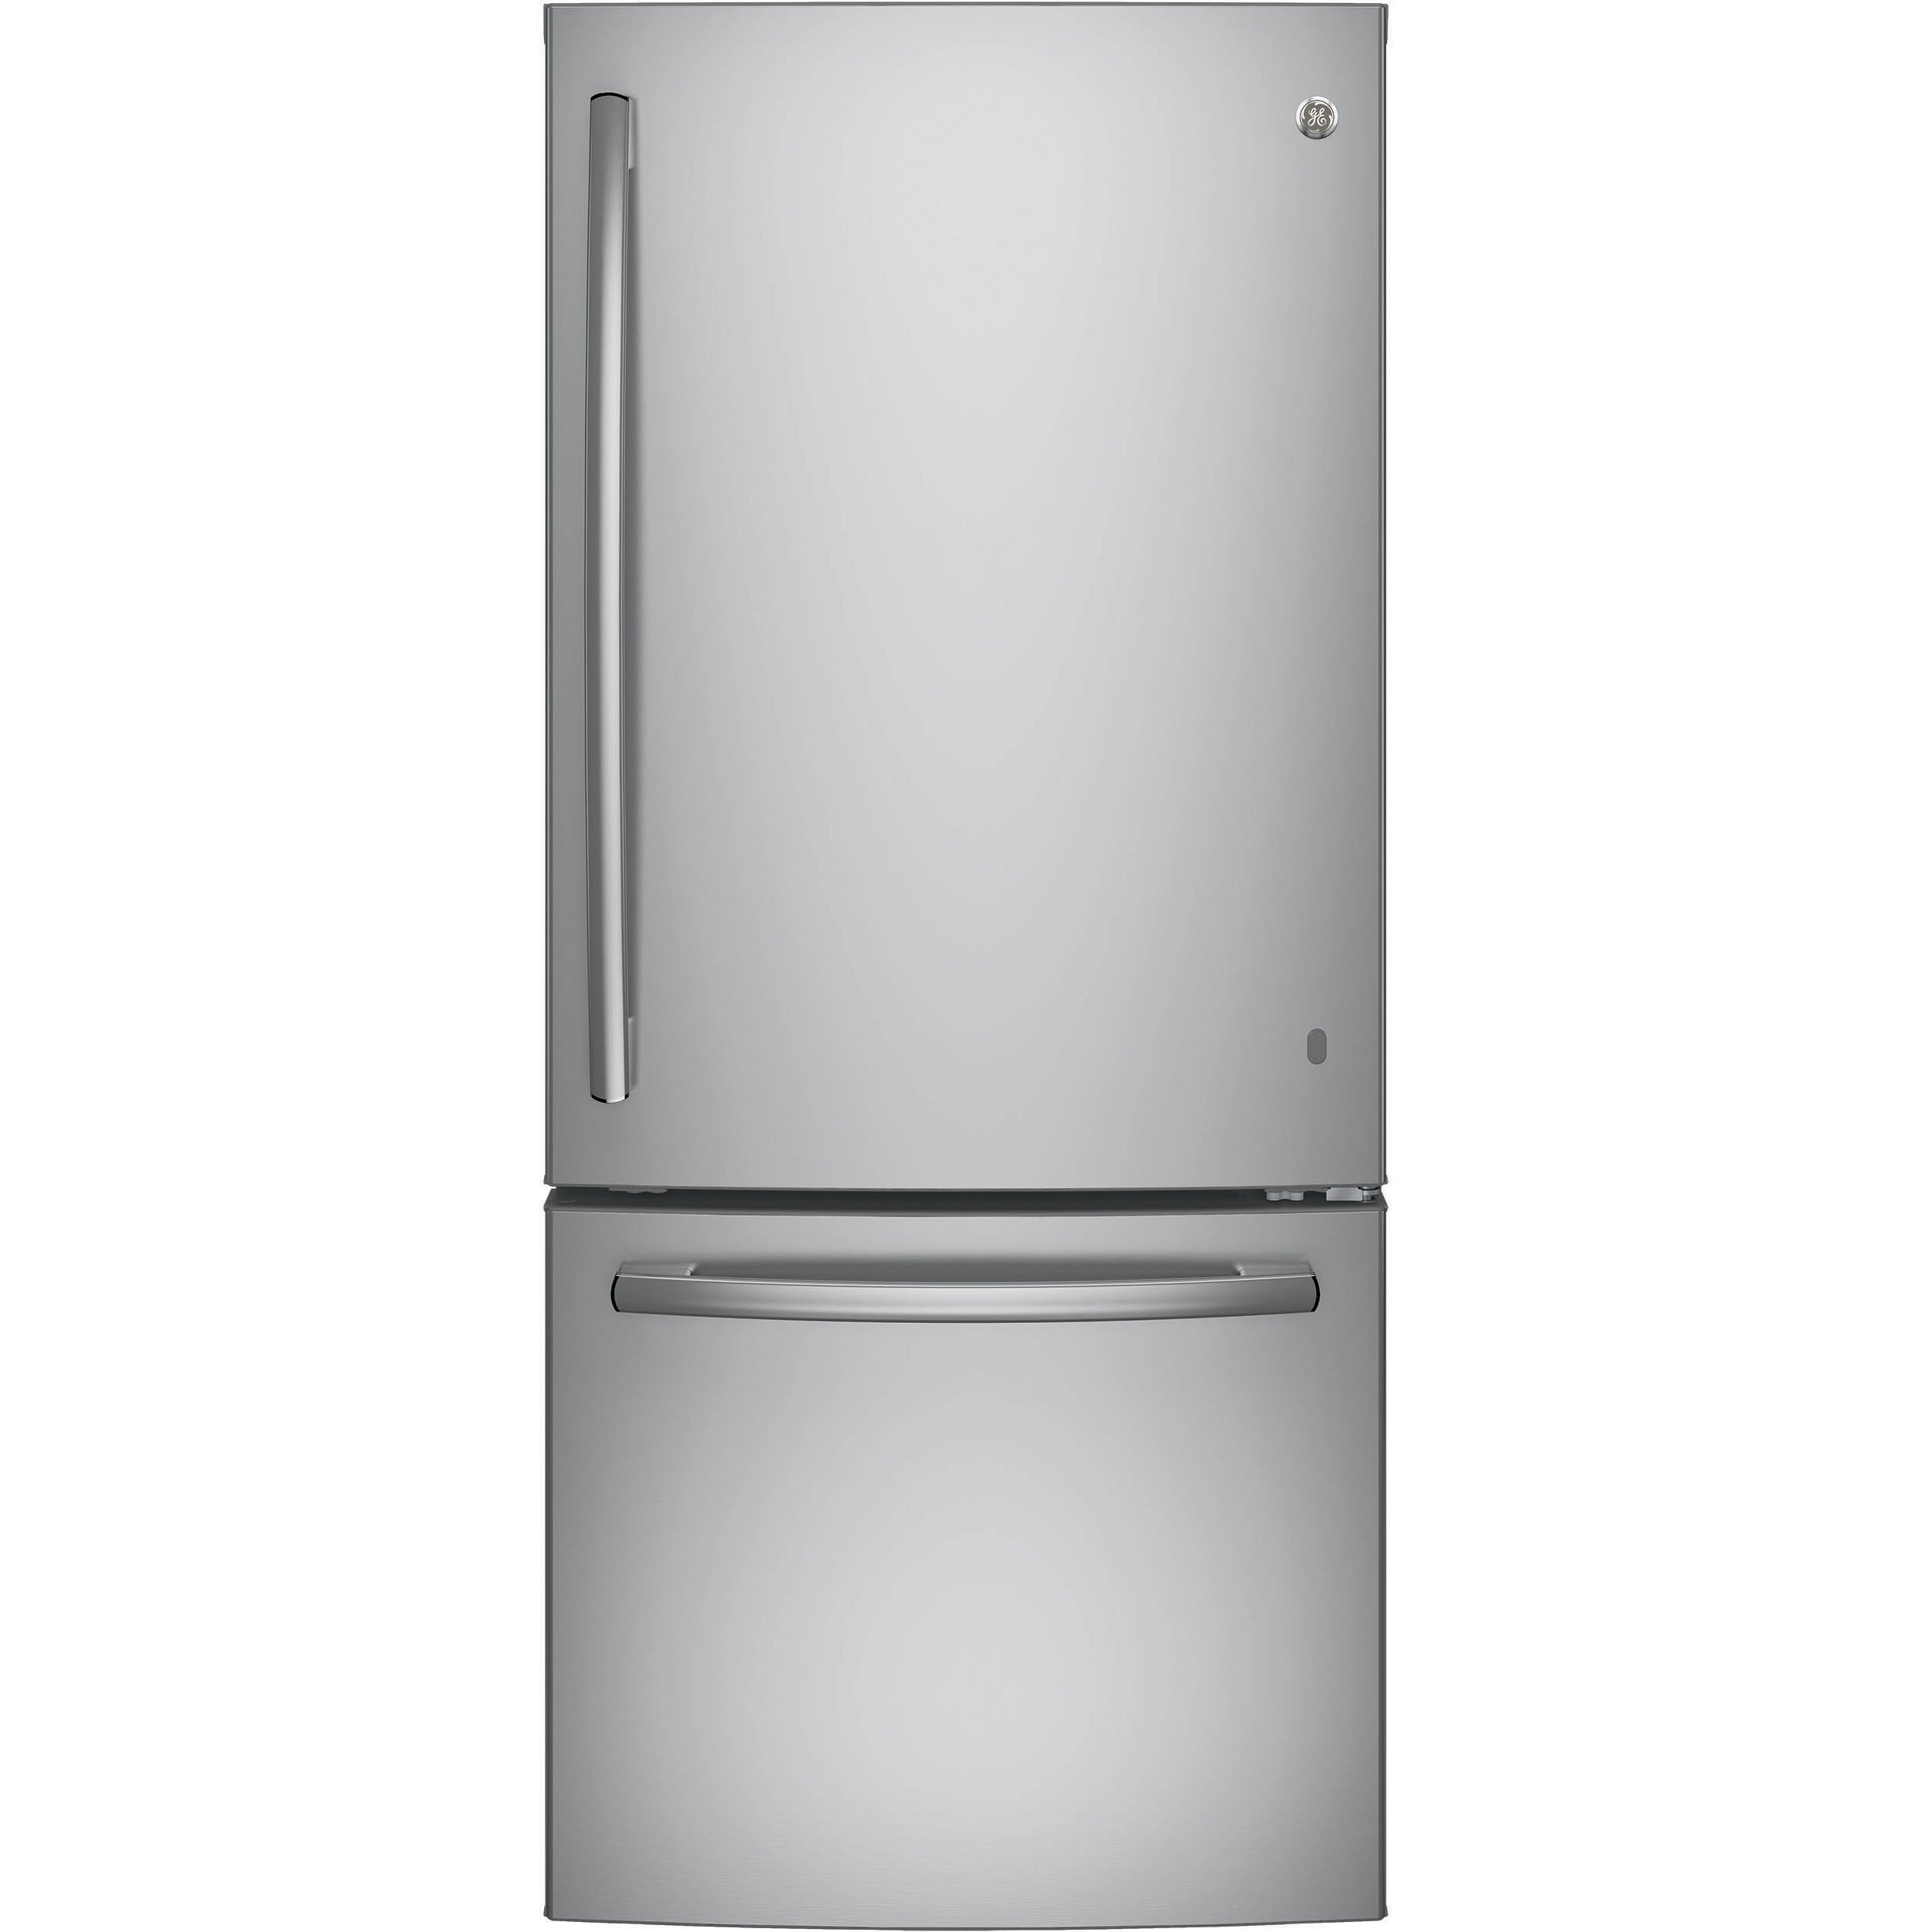 Ge Series Energy Star 20 9 Cubic Foot Bottom Freezer Refrigerator Free Shipping Today 13223844